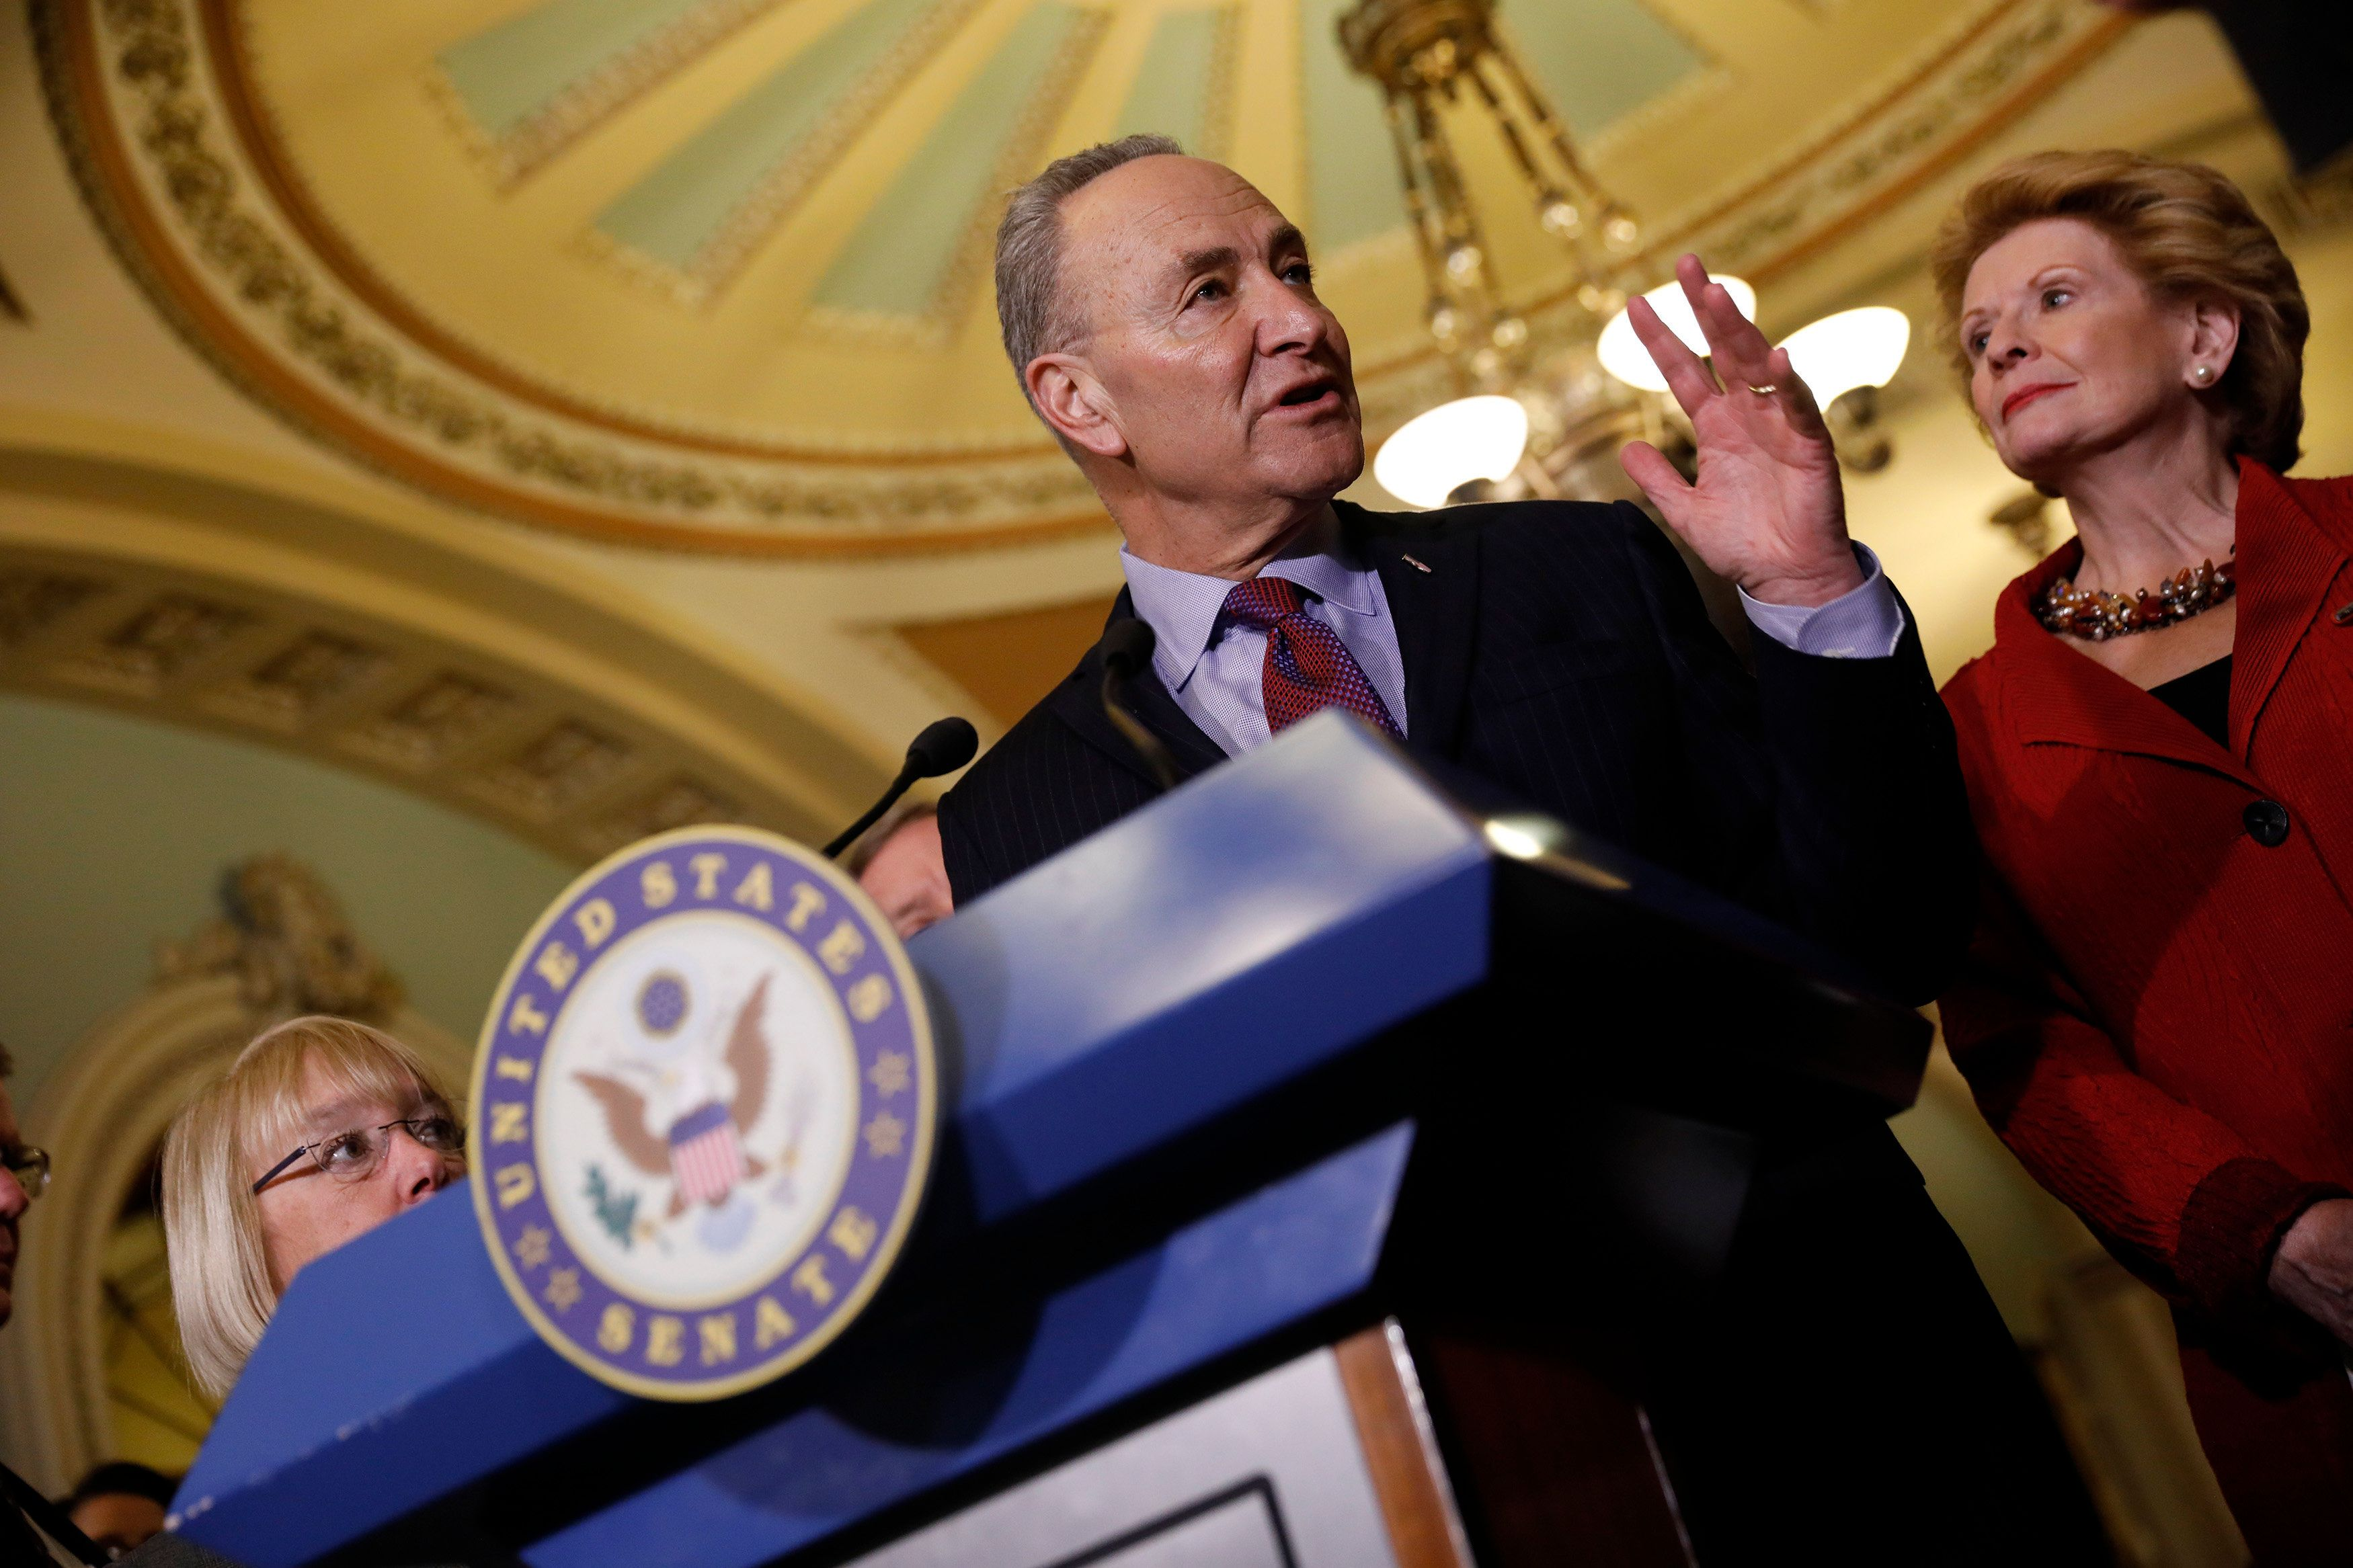 WASHINGTON, DC - JANUARY 31: Senate Minority Leader Chuck Schumer (D-NY) speaks with the media at the US Capitol January 31, 2017 in Washington, DC. Schumer addressed President Trump's travel ban. (Photo by Aaron P. Bernstein/Getty Images)